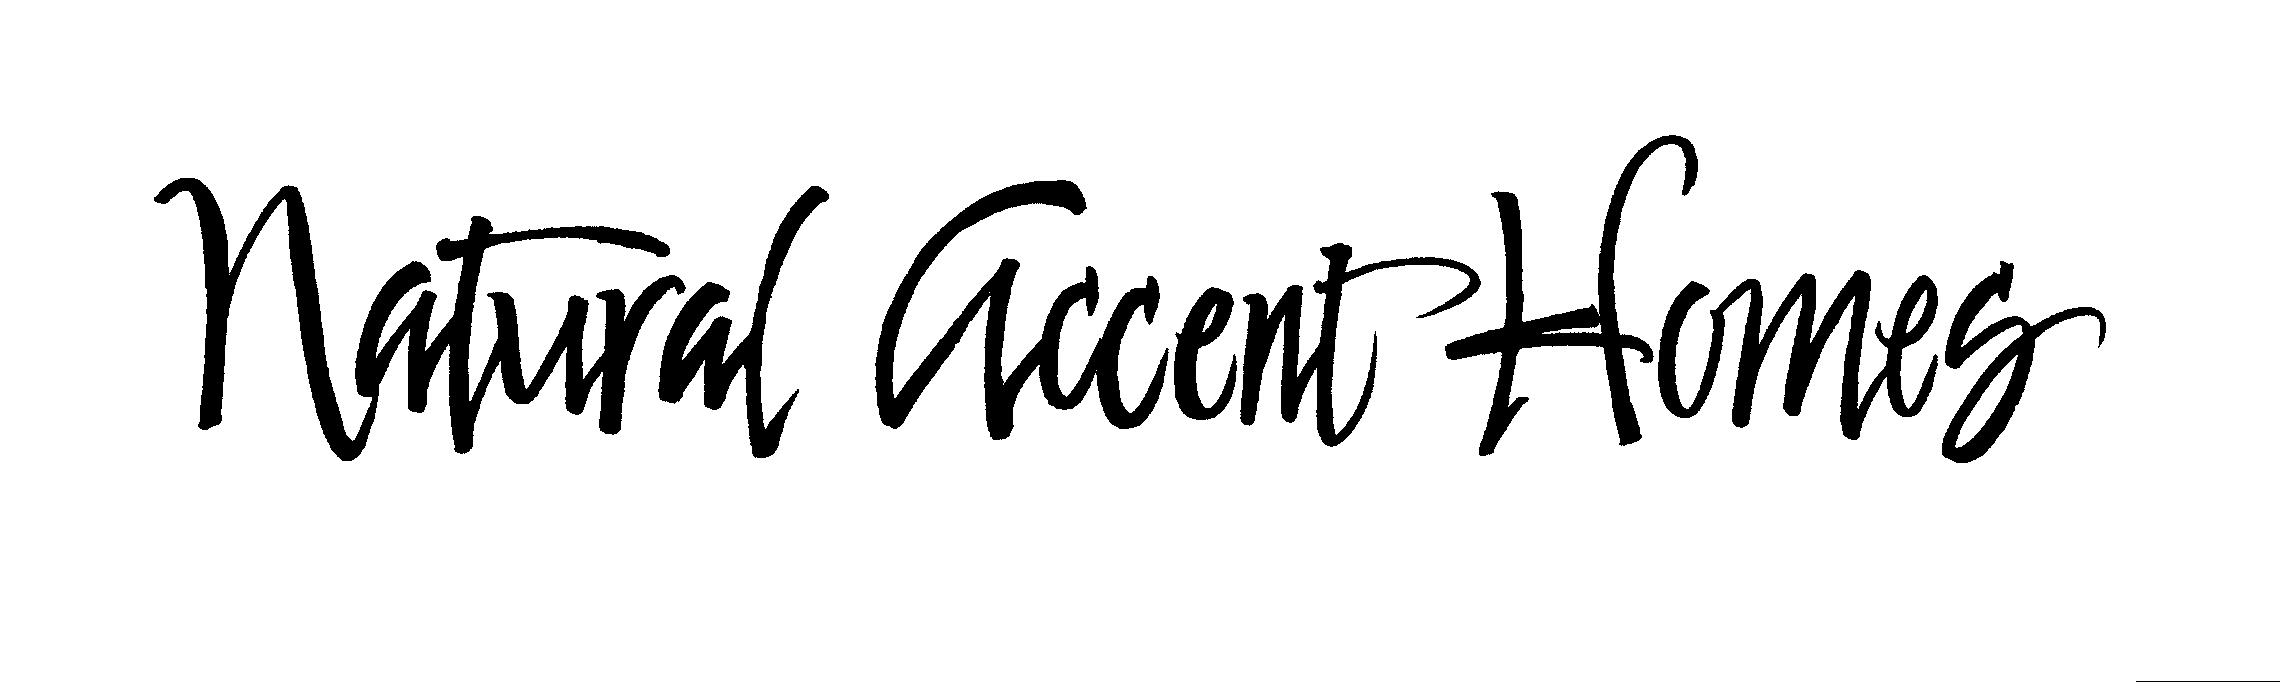 natural accent homes logo jpg